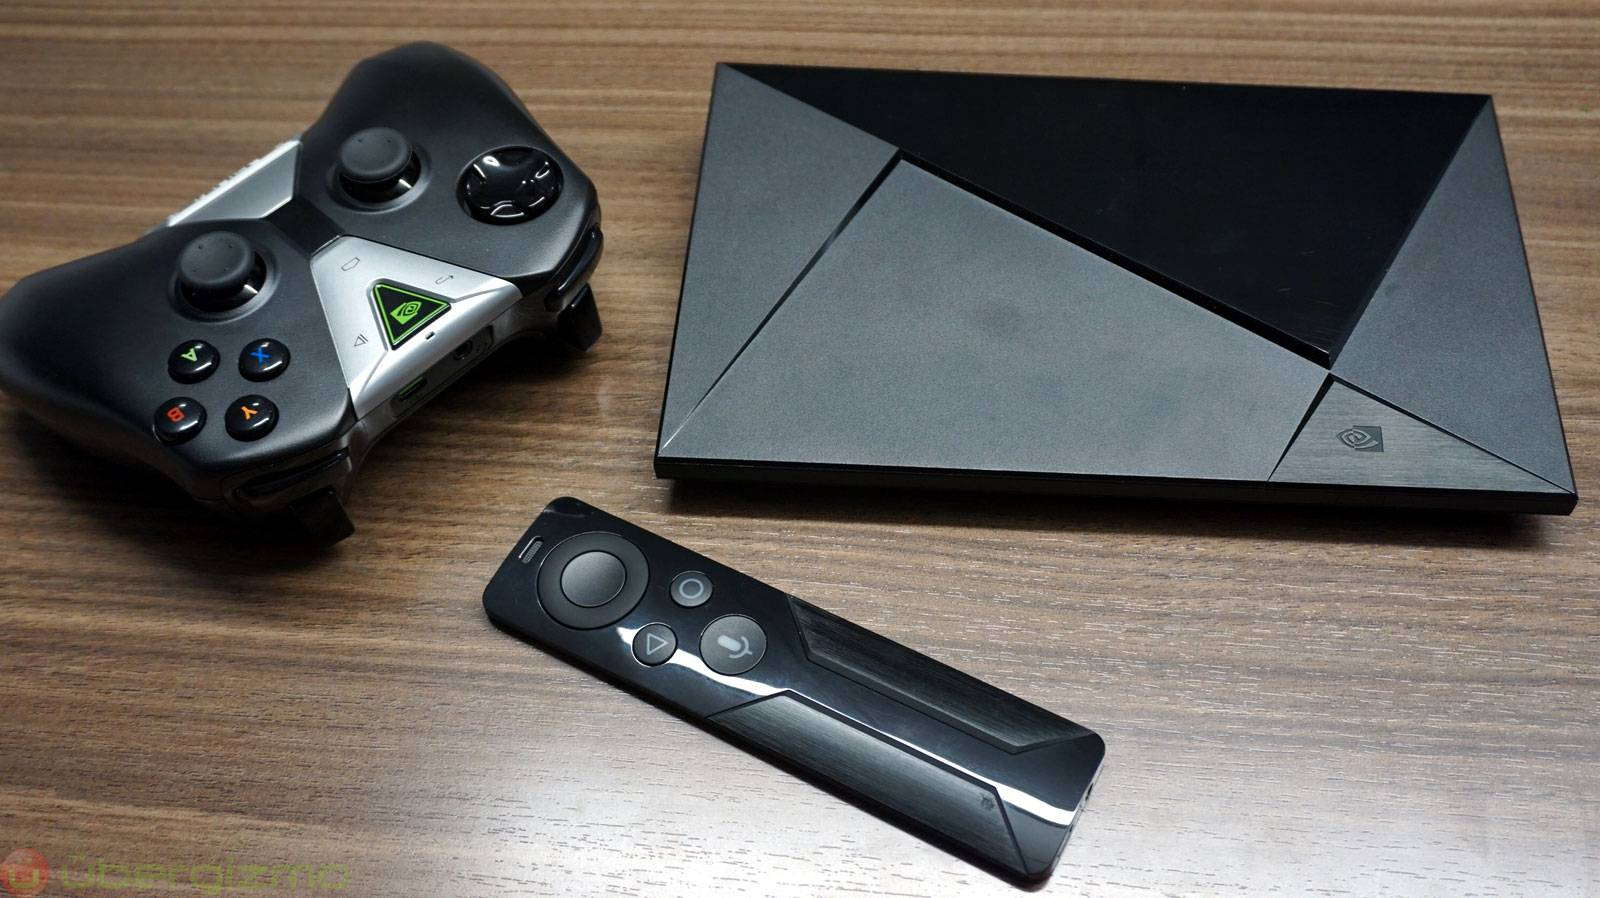 Legally install Android TV and NVIDIA Shield games on your